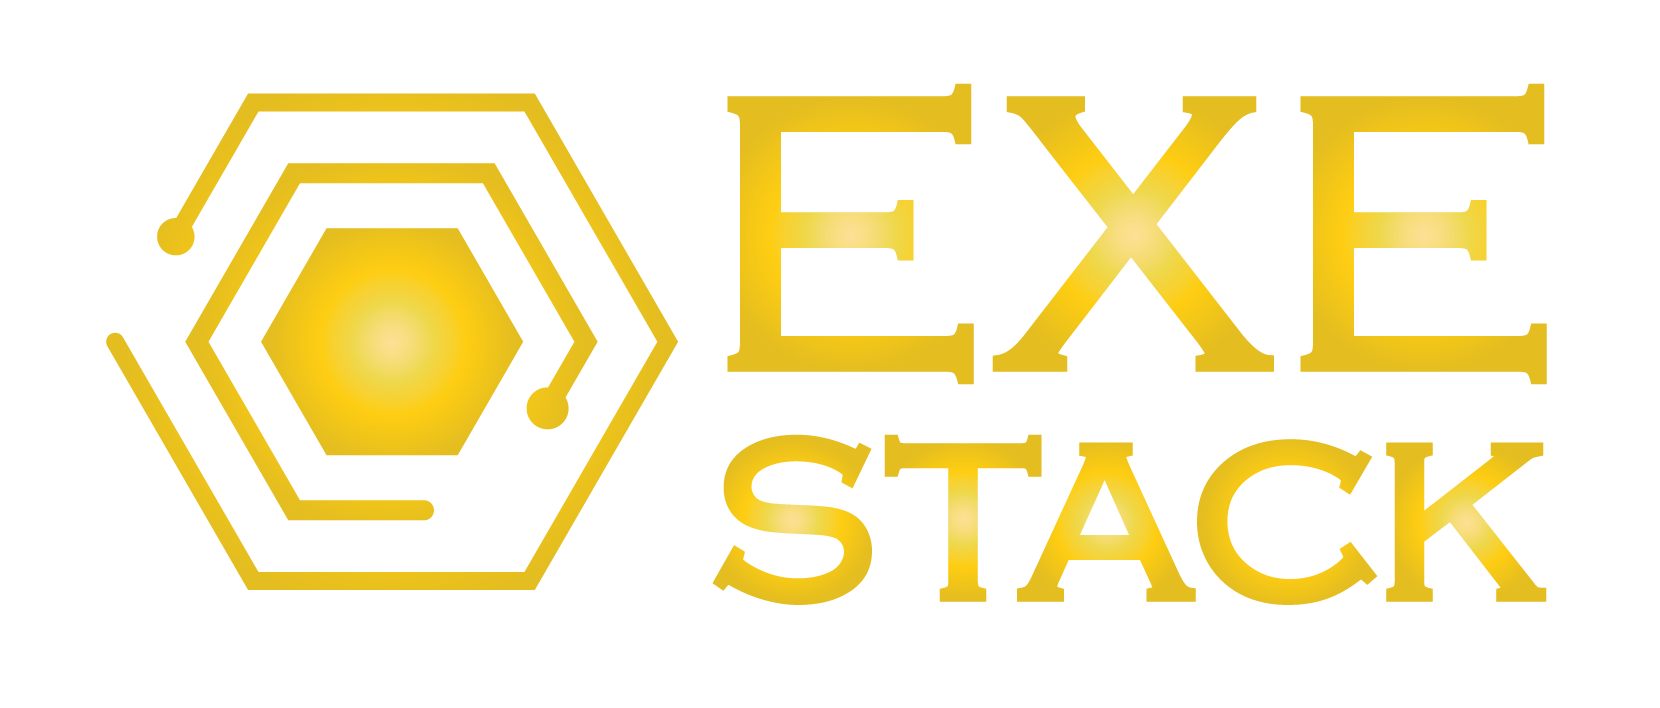 Exe.stack